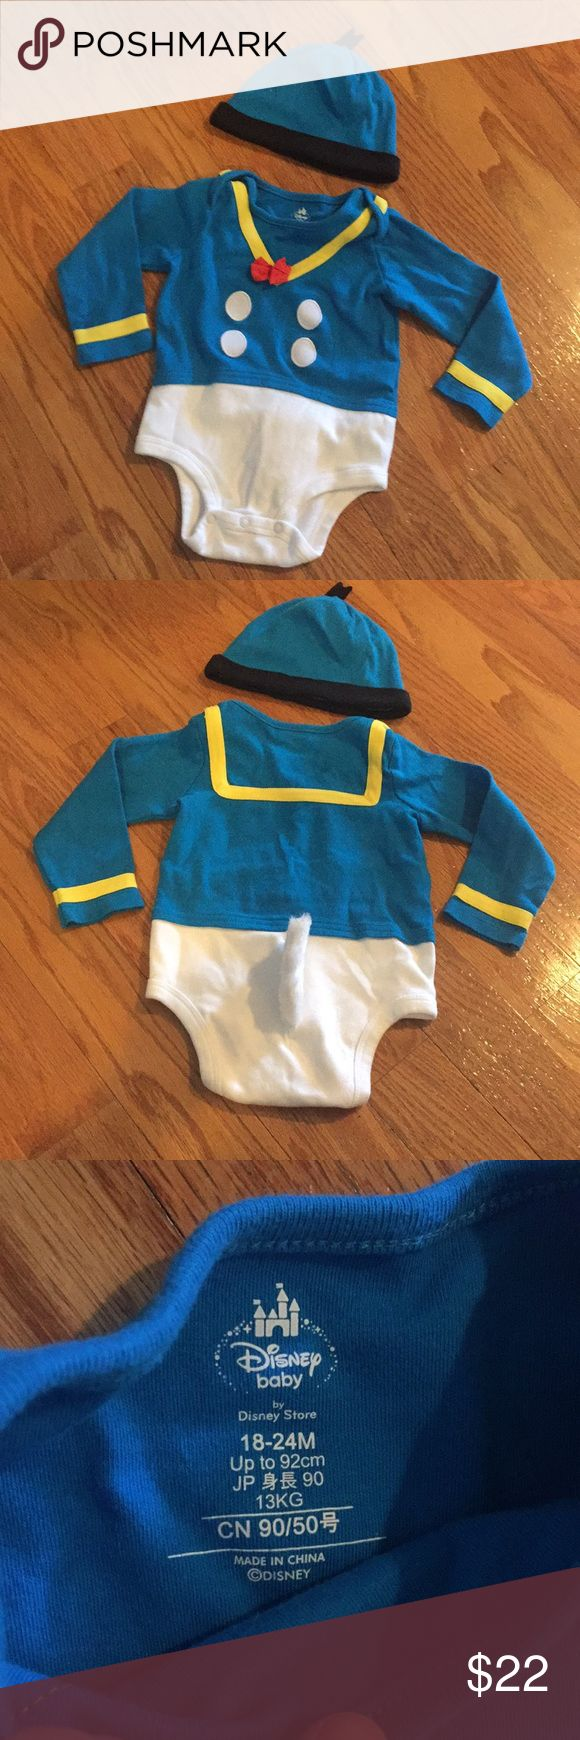 Donald Duck Costume Bodysuit for Baby 18-24 M Donald Duck Costume Bodysuit for Baby 18-24 months. Worn ones for pictures.  See photos for details. Disney Costumes